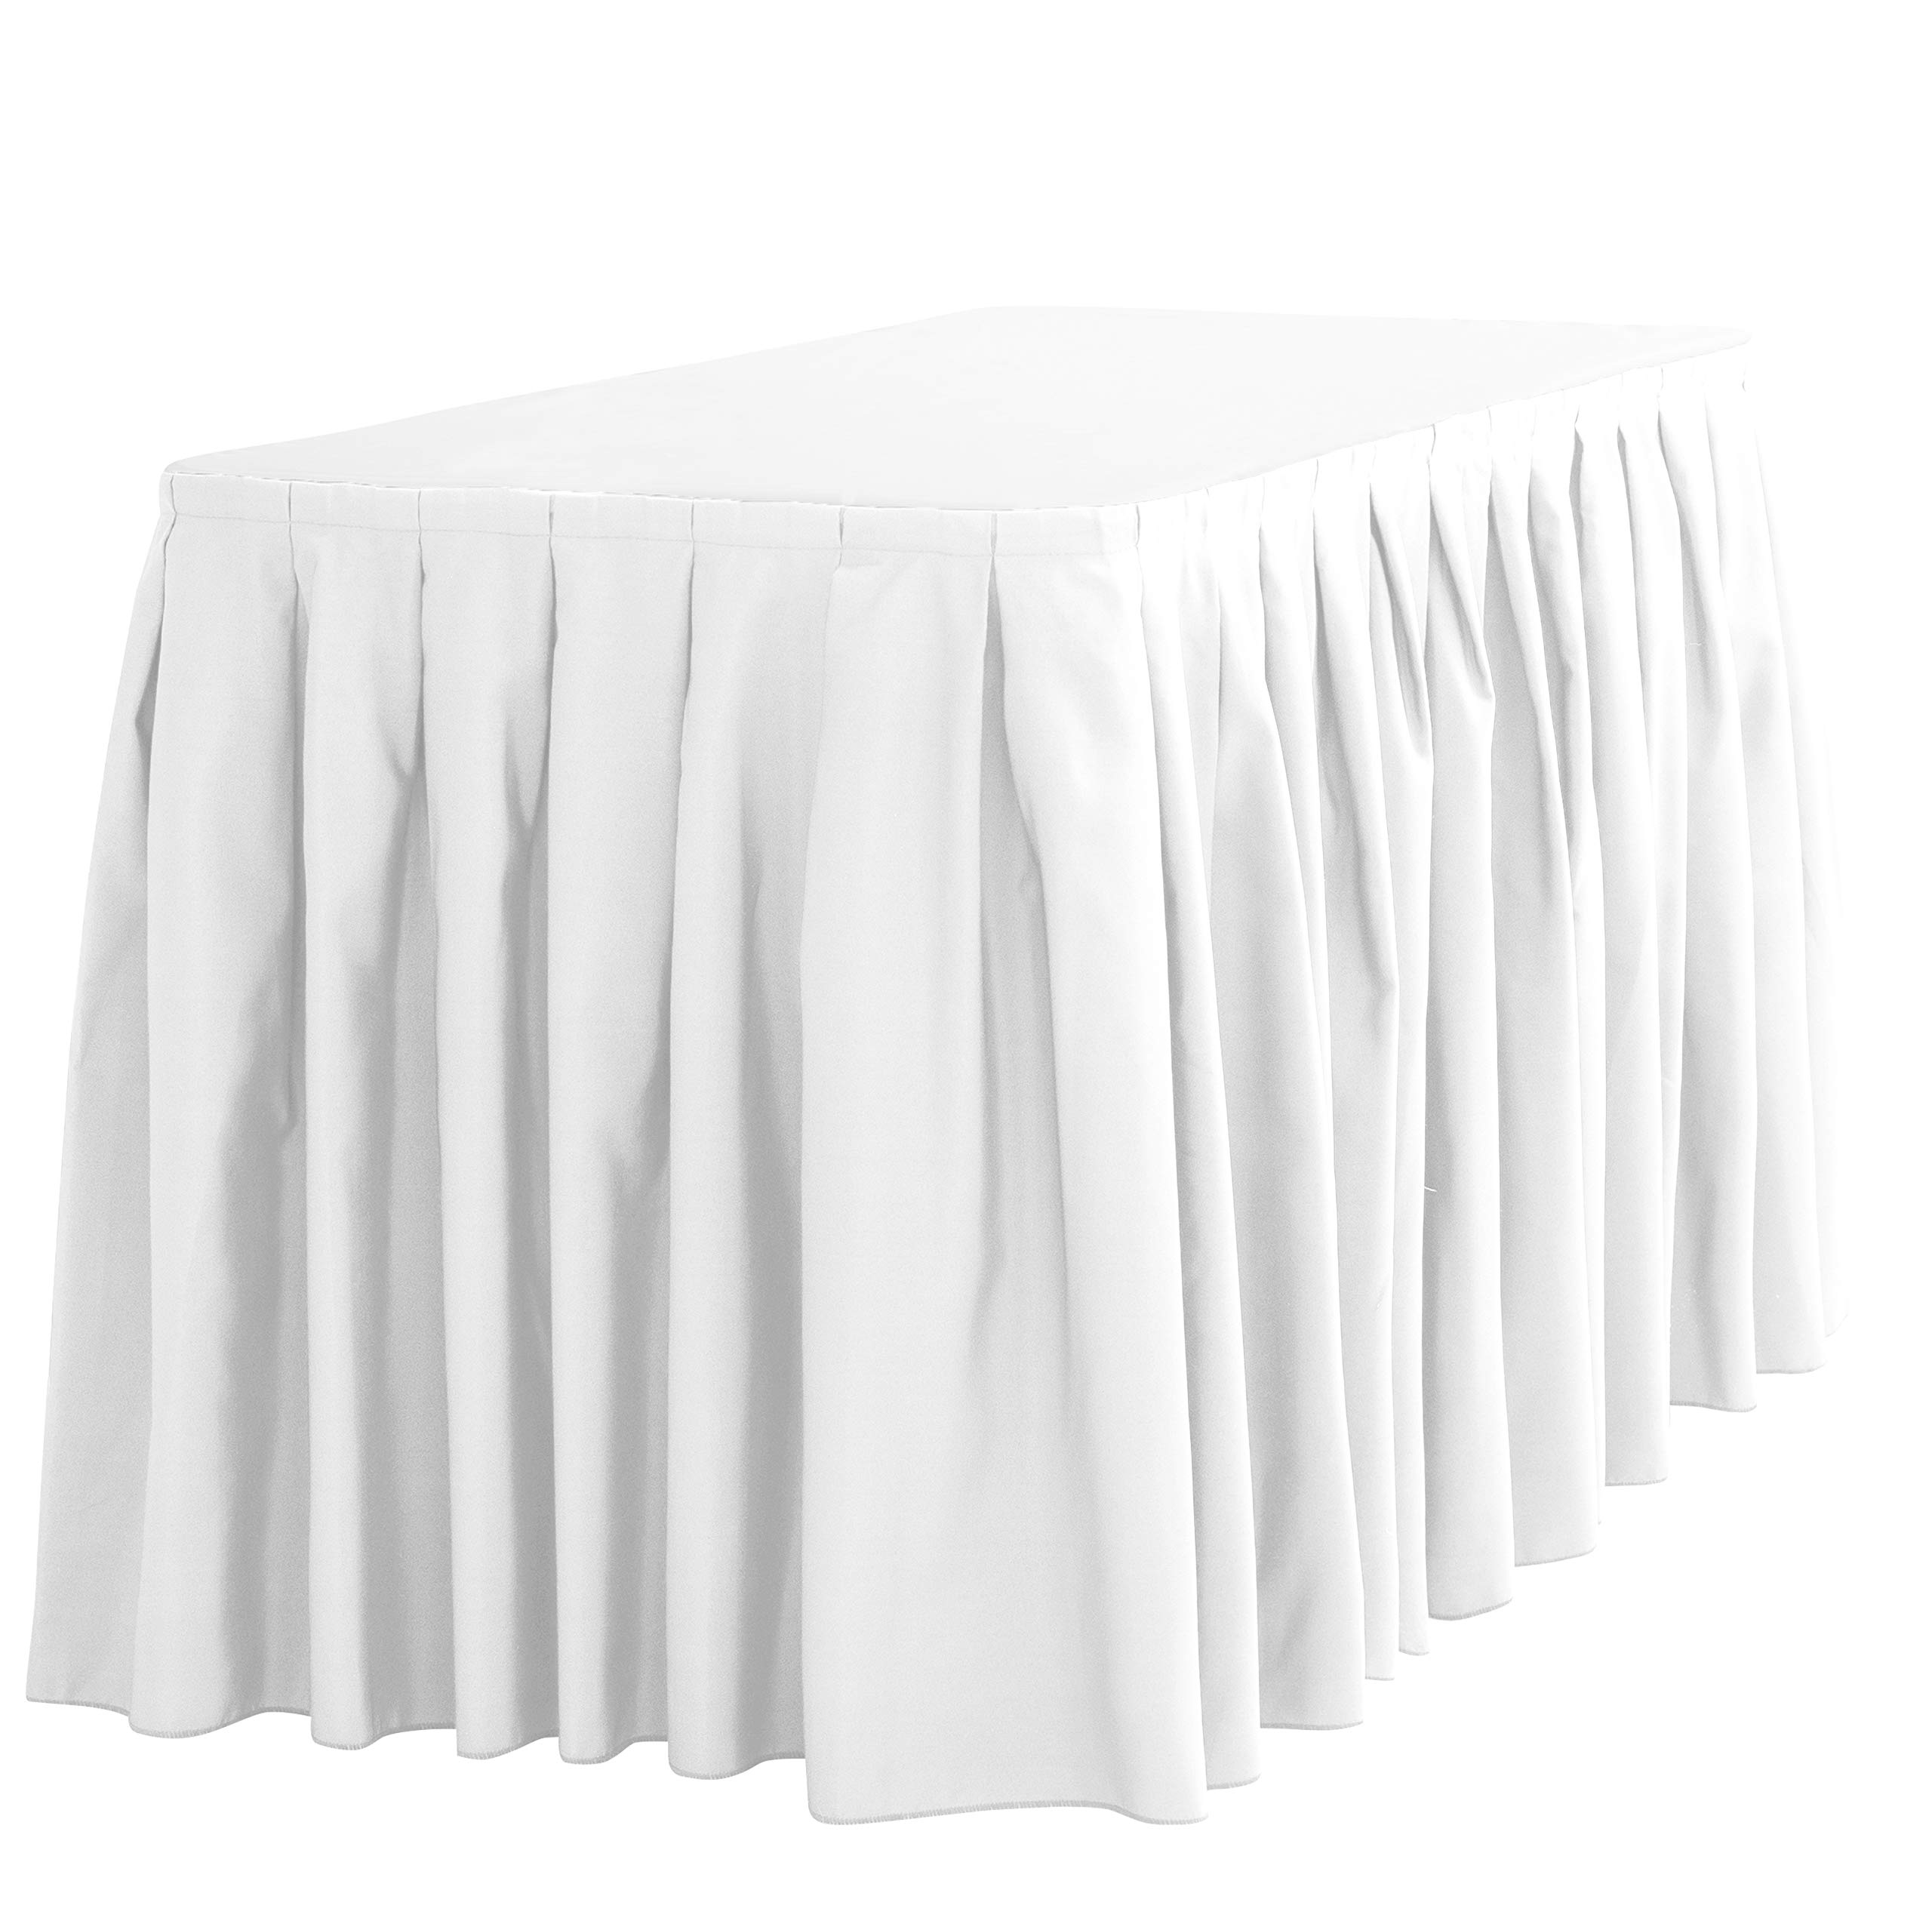 LinenTablecloth 14 ft. Accordion Pleat Polyester Table Skirt White by LinenTablecloth